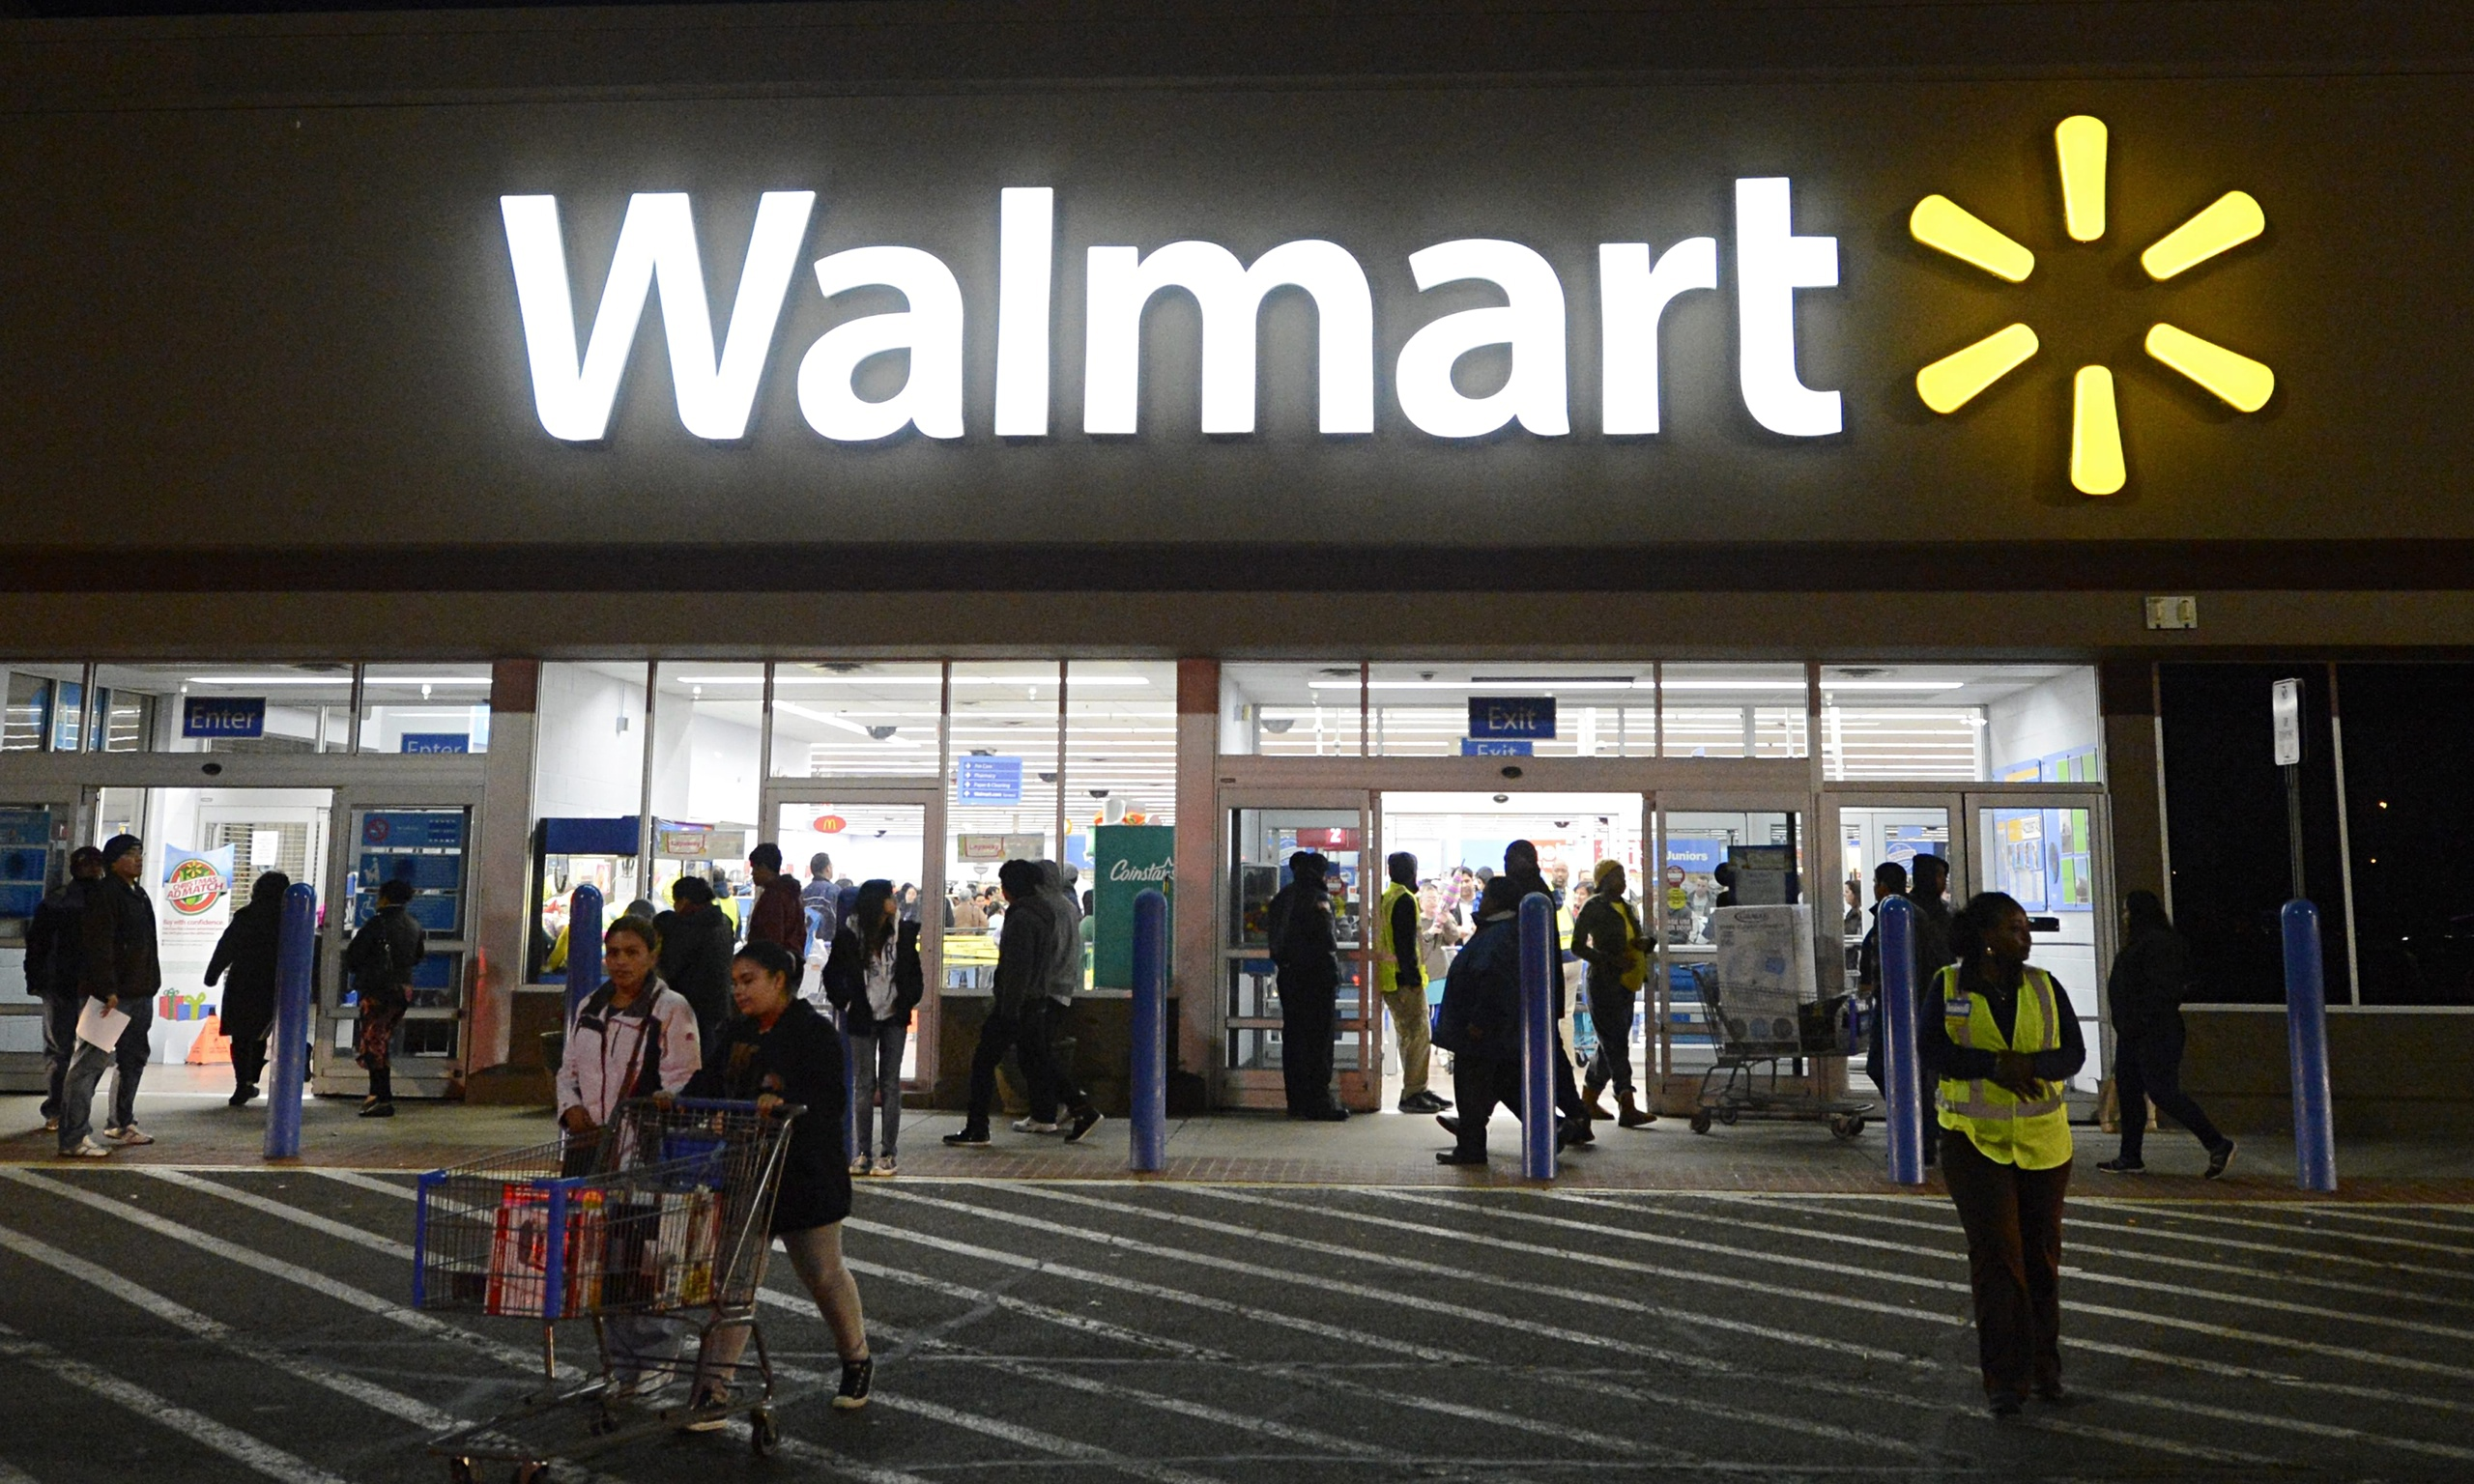 Walmart replaces head of struggling US business